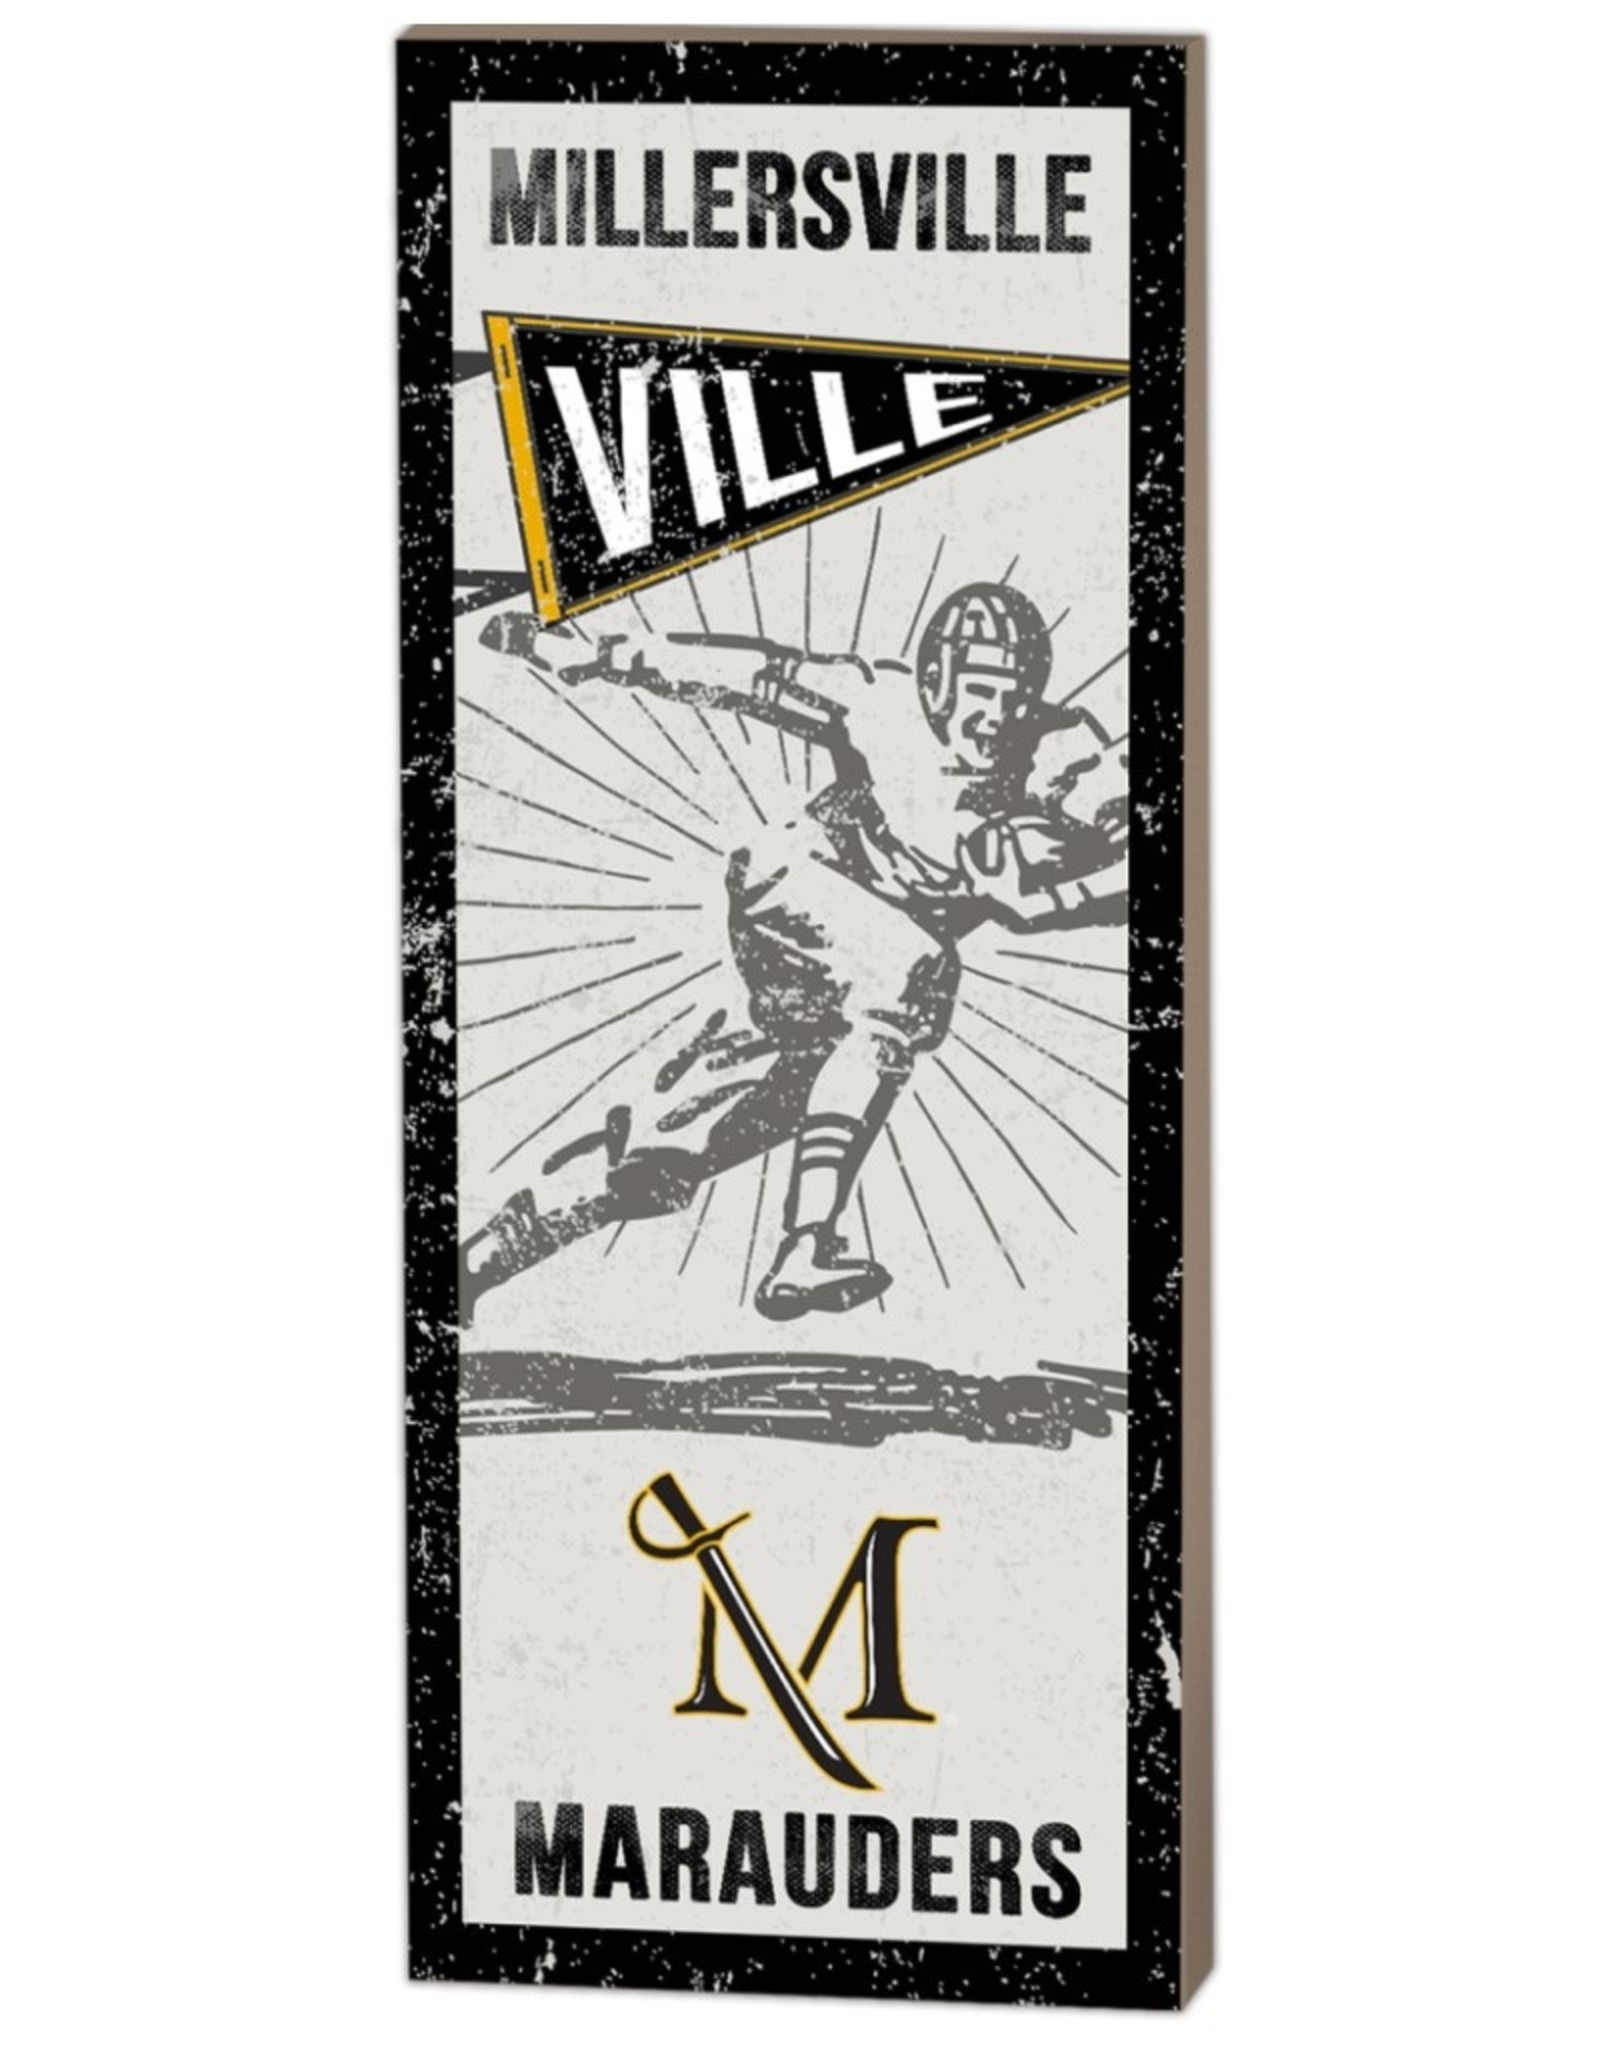 Vintage Player Pennant Wall Art